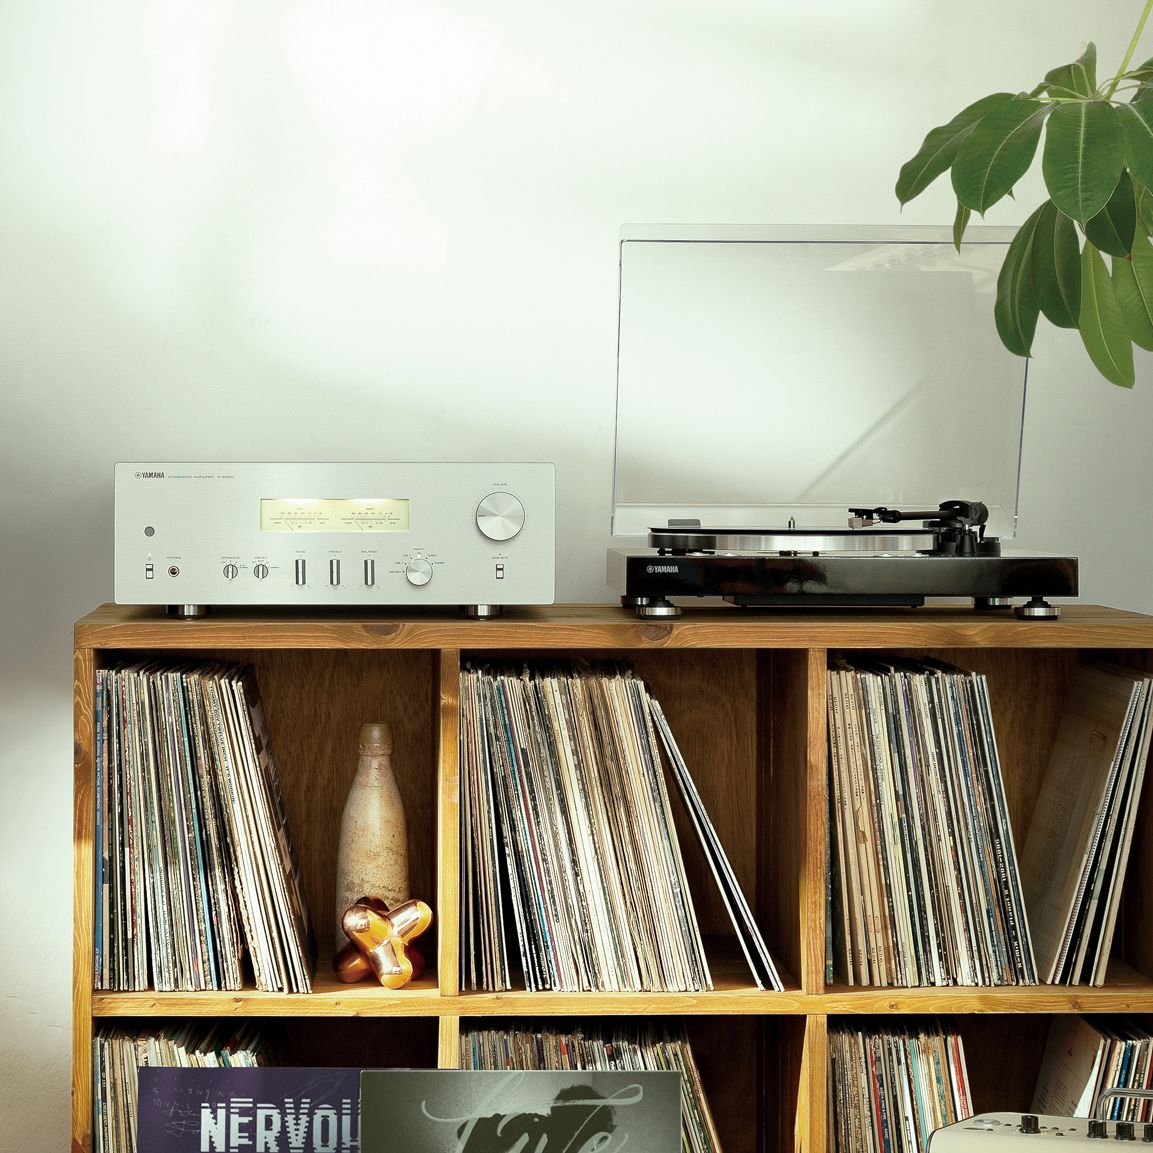 A-S1200 - Overview - Hi-Fi Components - Audio & Visual - Products - Yamaha  - United States